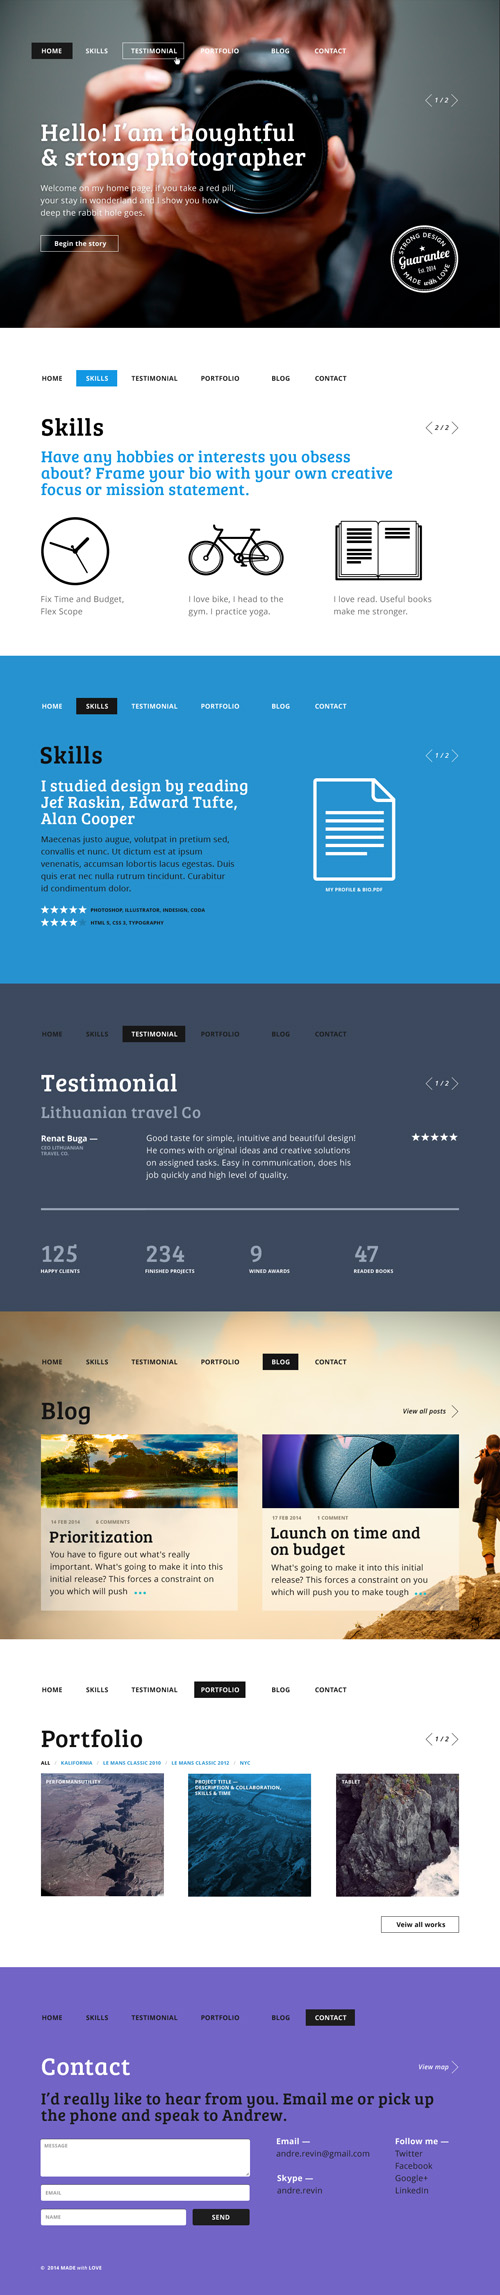 One Page Business Psd Templates | Design | | Inspiration DE